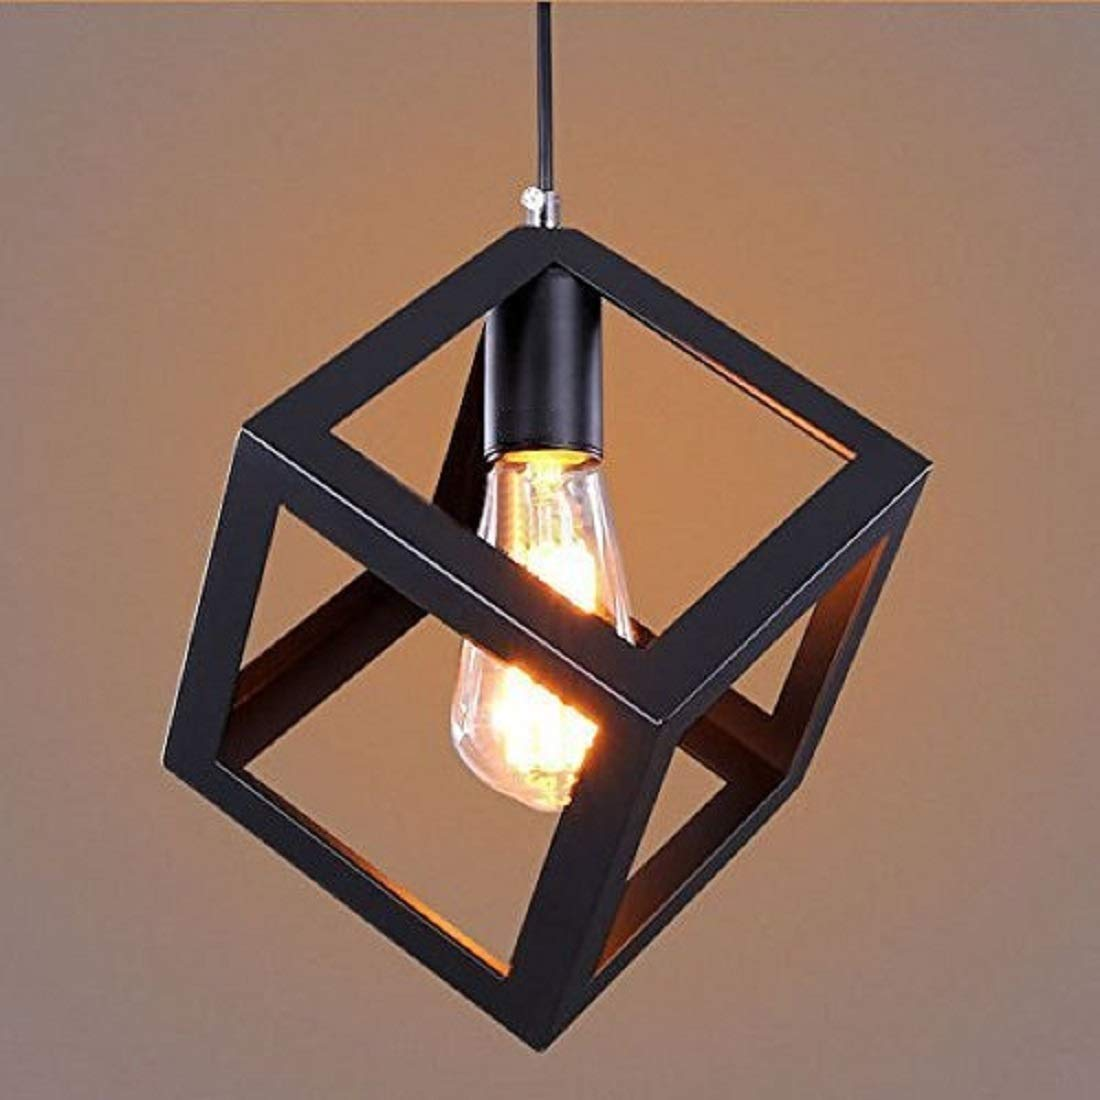 Groeien 60W Ceiling Light, Black, Square(Buy 2, Use Coupon Code INDIDES15OFF to get ₹80 Cashback)